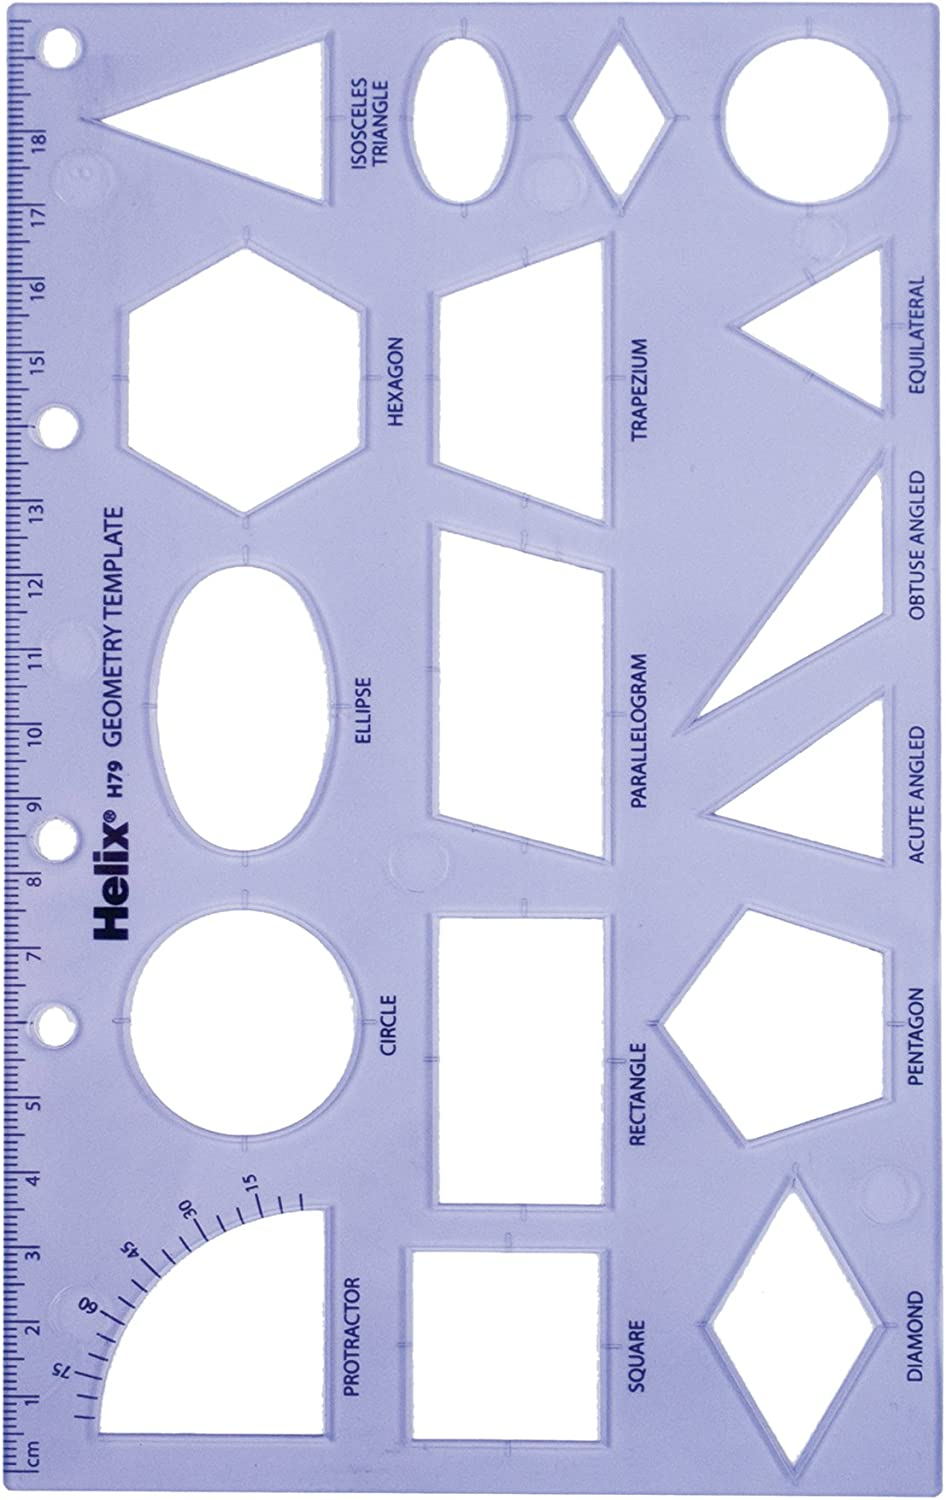 Maped Helix USA Helix Geometry Shape Template (08791) : Paper Templates : Office Products